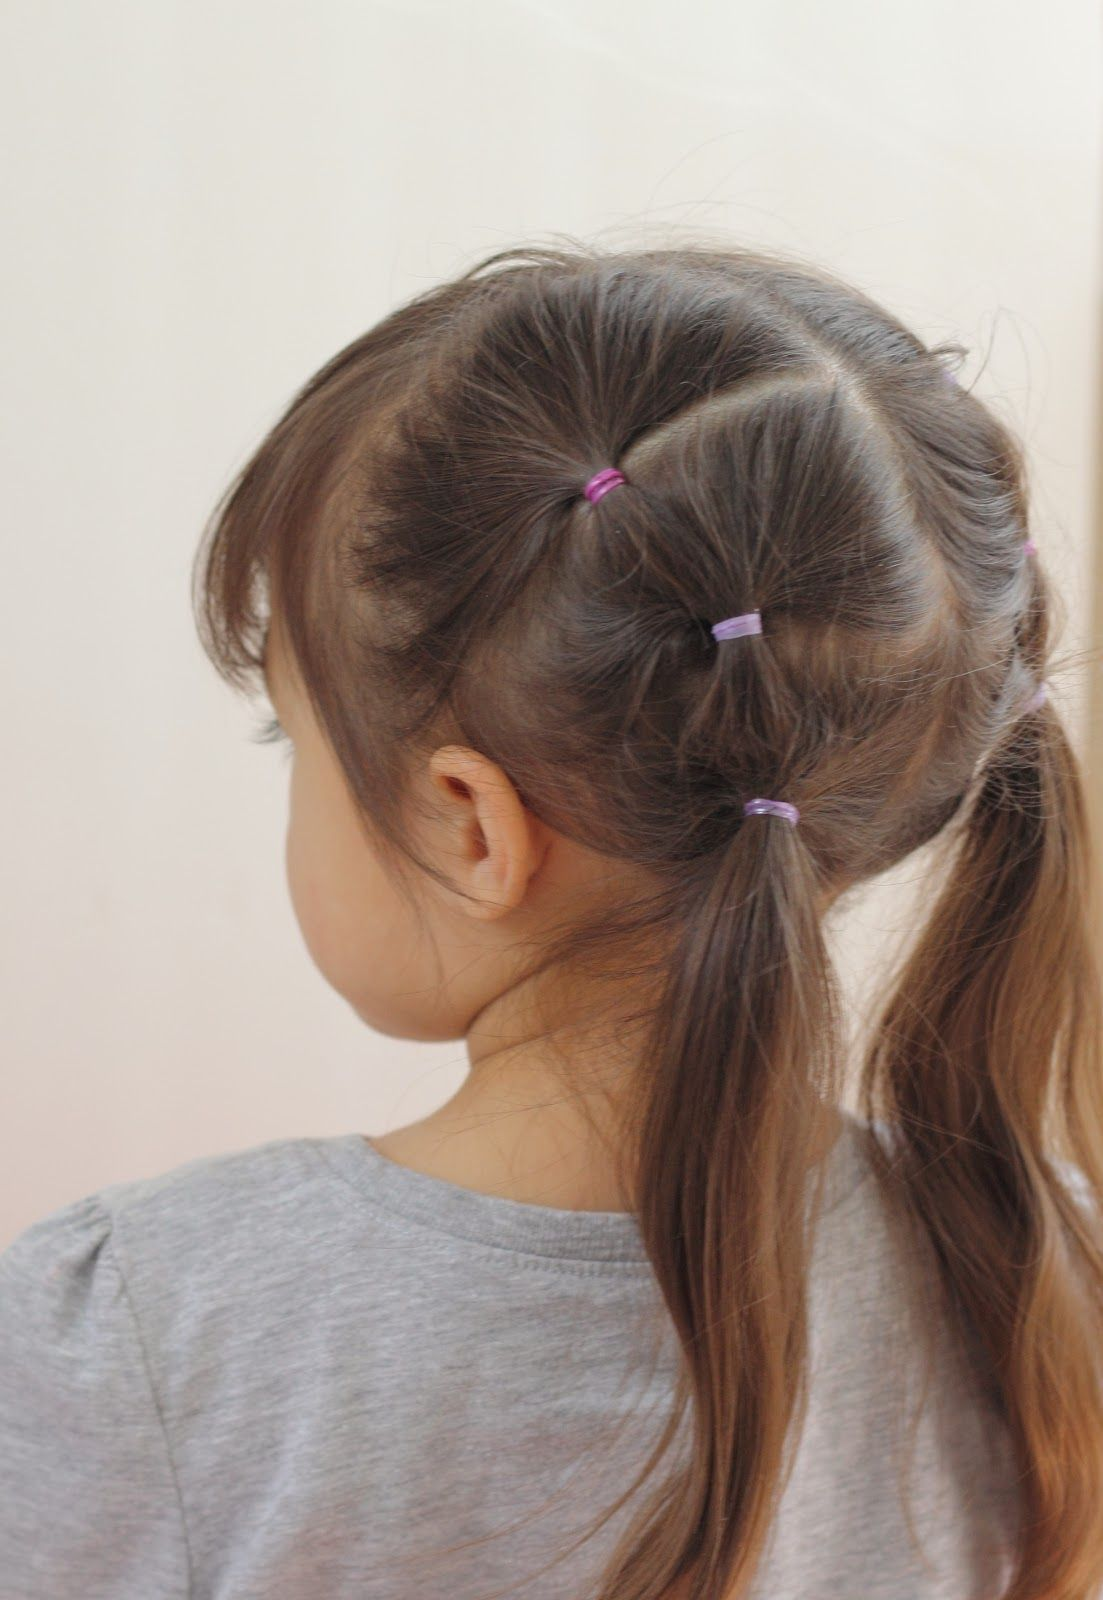 16 Toddler Hair Styles To Mix Up The Pony Tail And Simple Braids Dutch  Braids